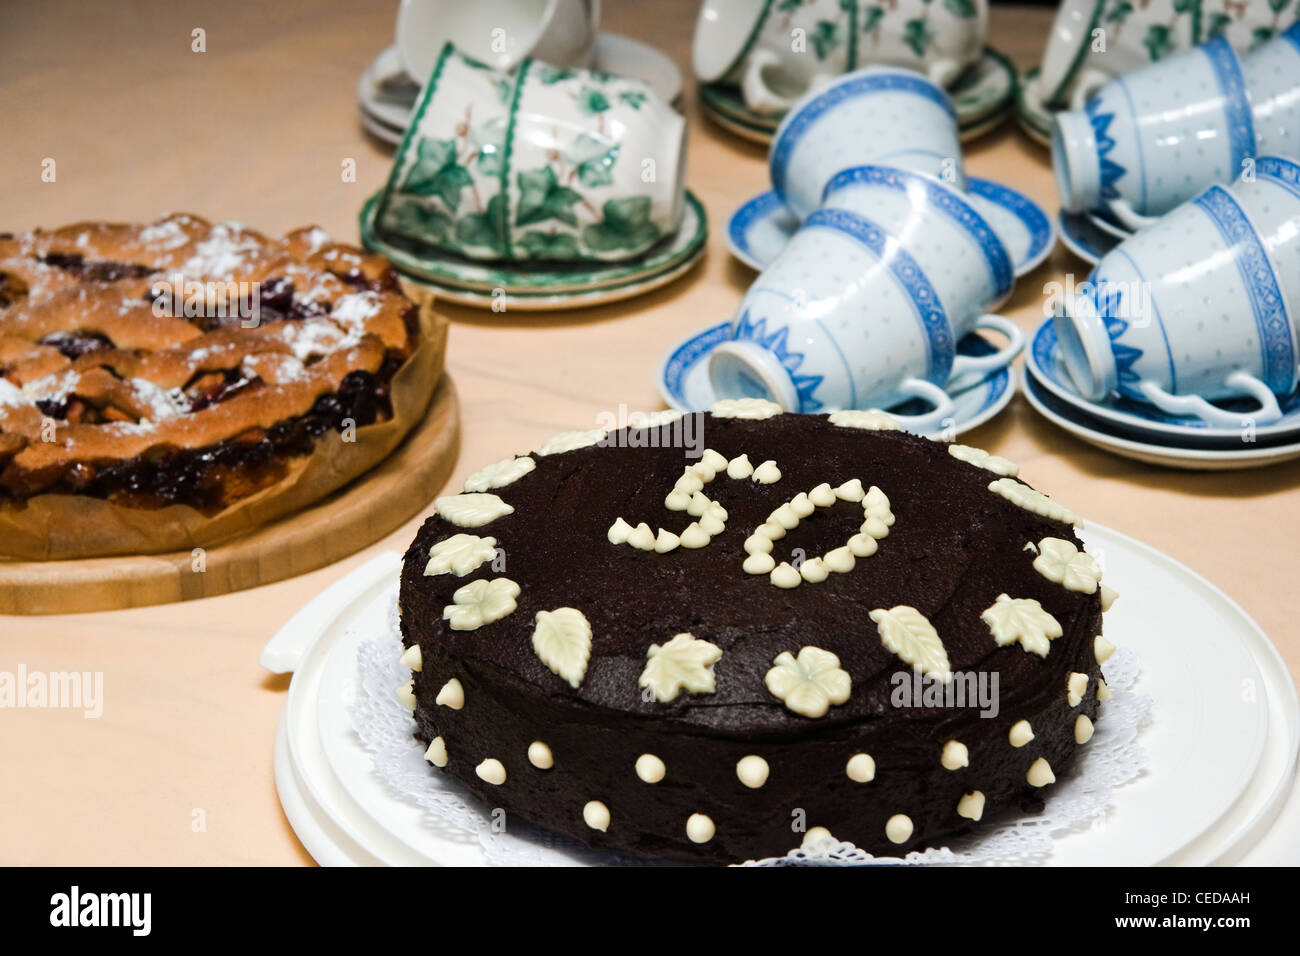 50th Birthday Cake High Resolution Stock Photography And Images Alamy